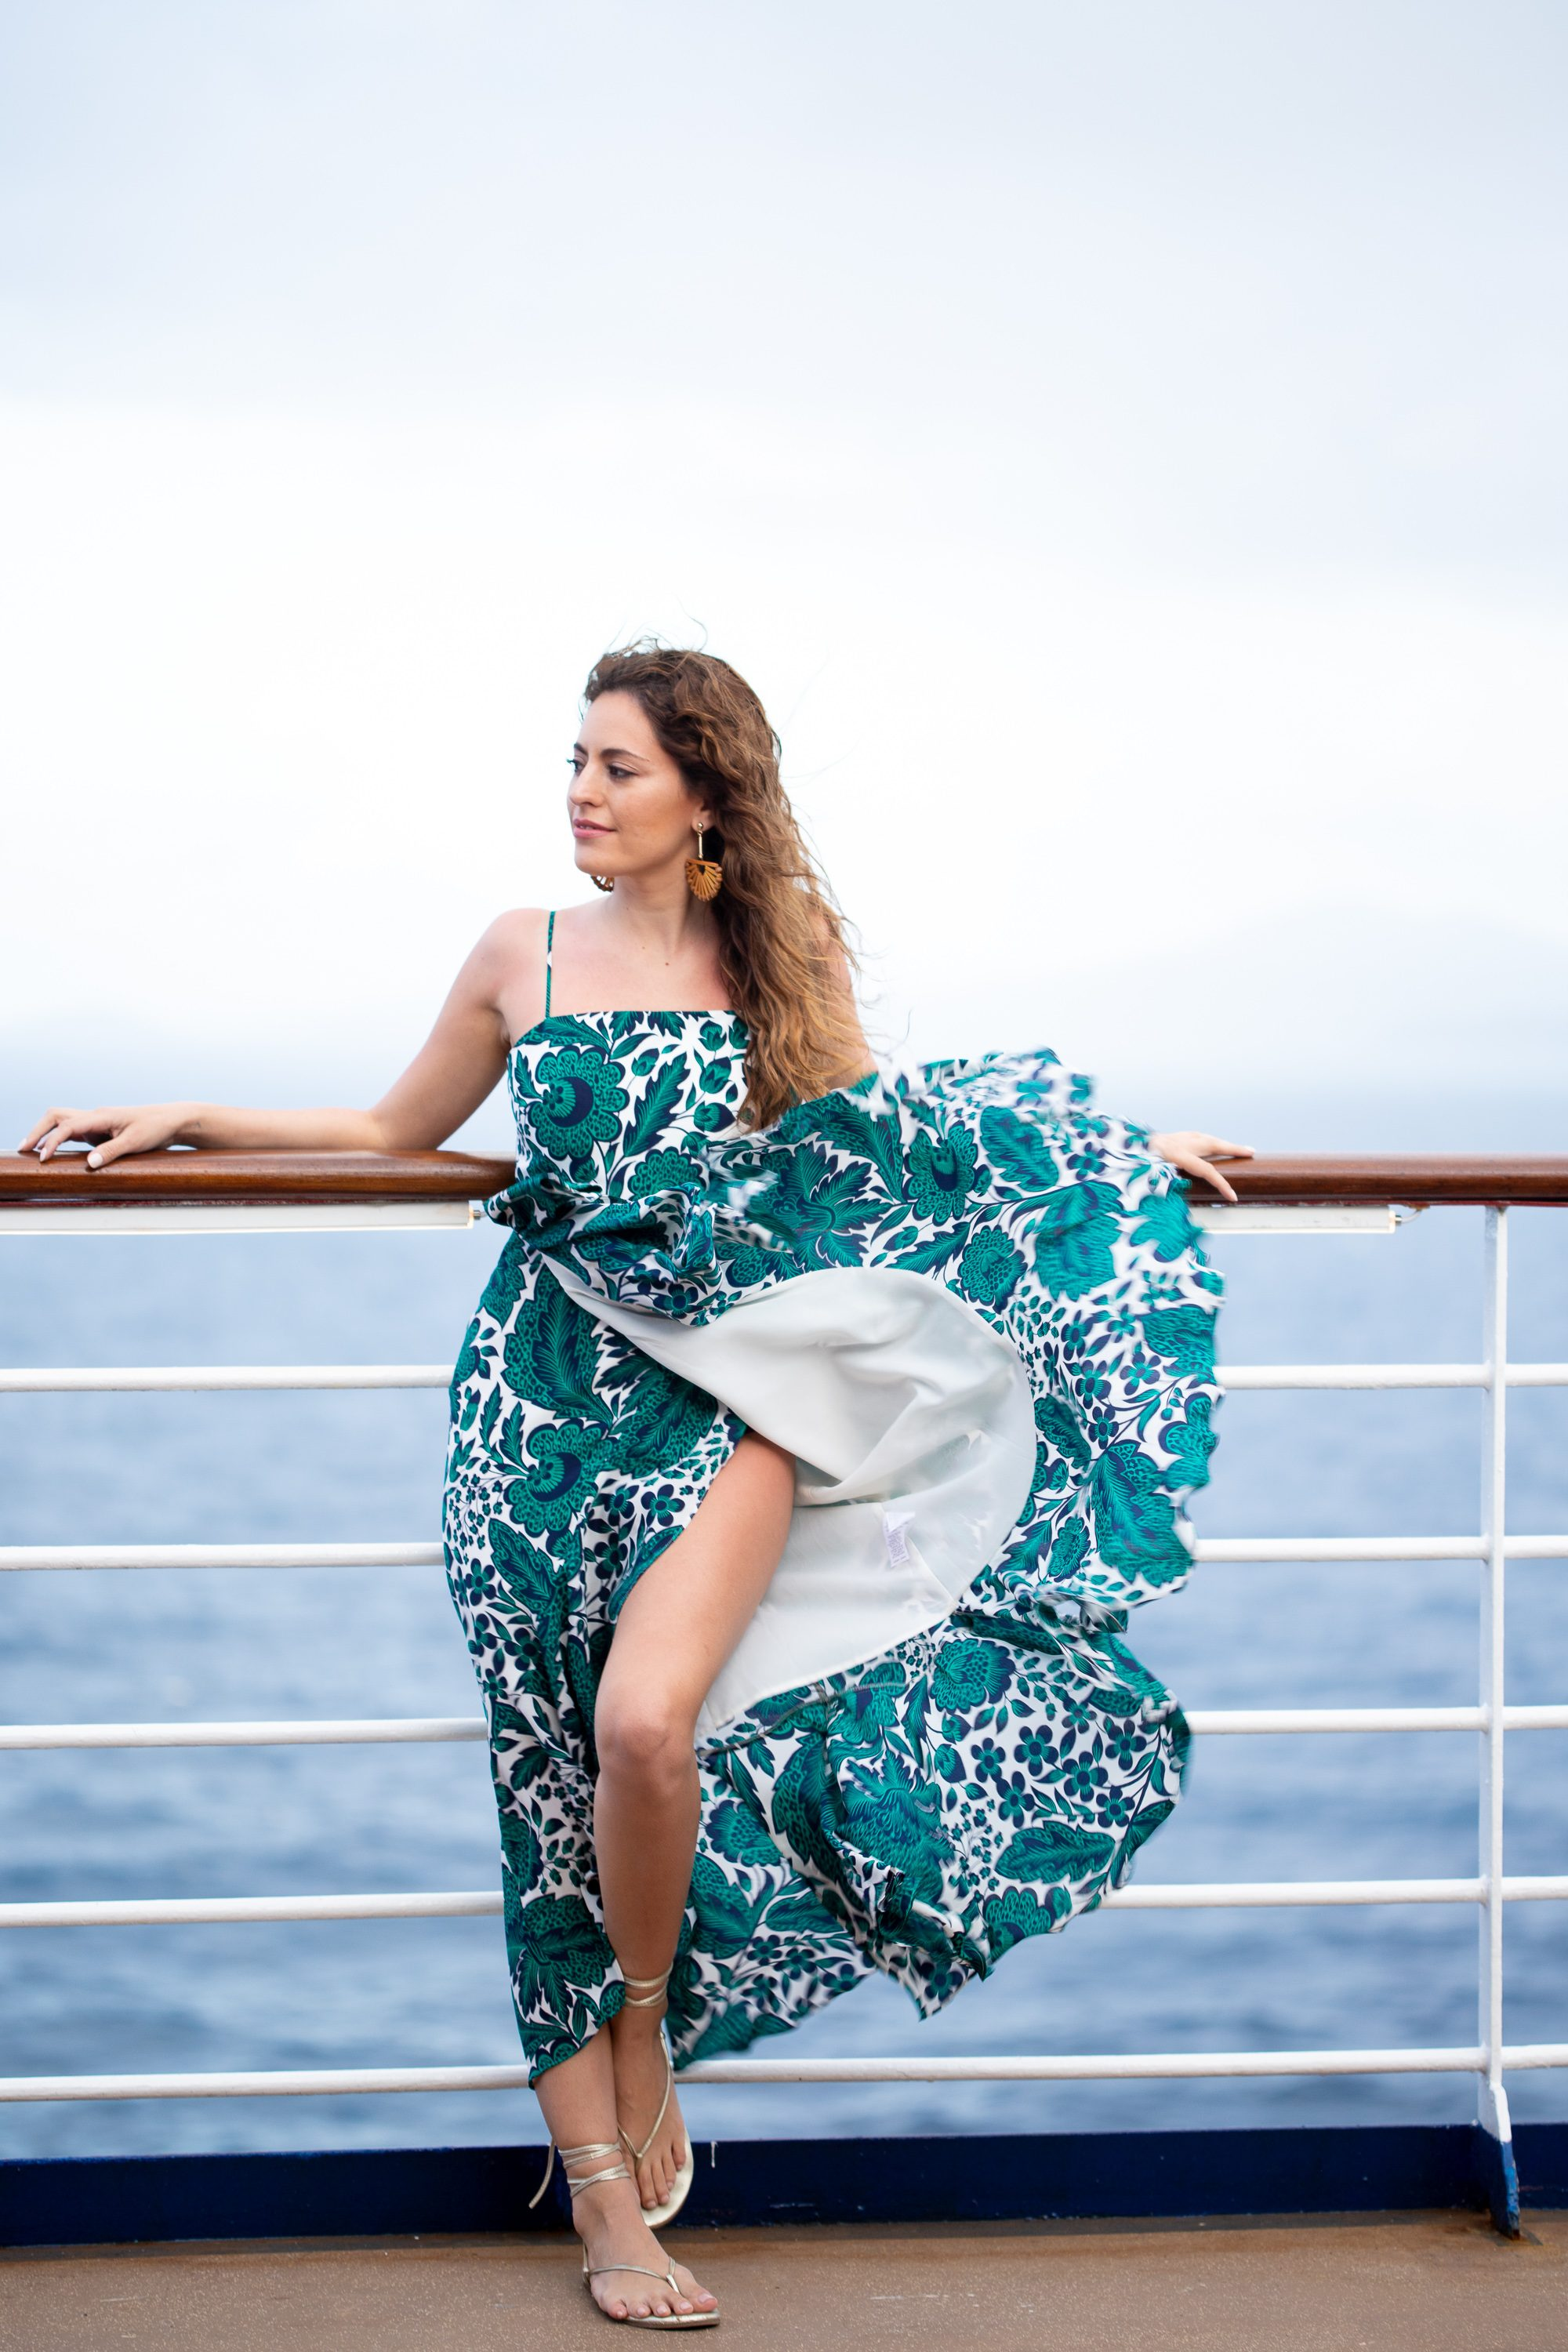 Ruffle High/Low Silk Dress J.CREW, celebrity cruises celebrity summit, what to wear on a cruise, vacation outfit ideas, resort chic dresses, feminine spring dresses, spring outfit ideas